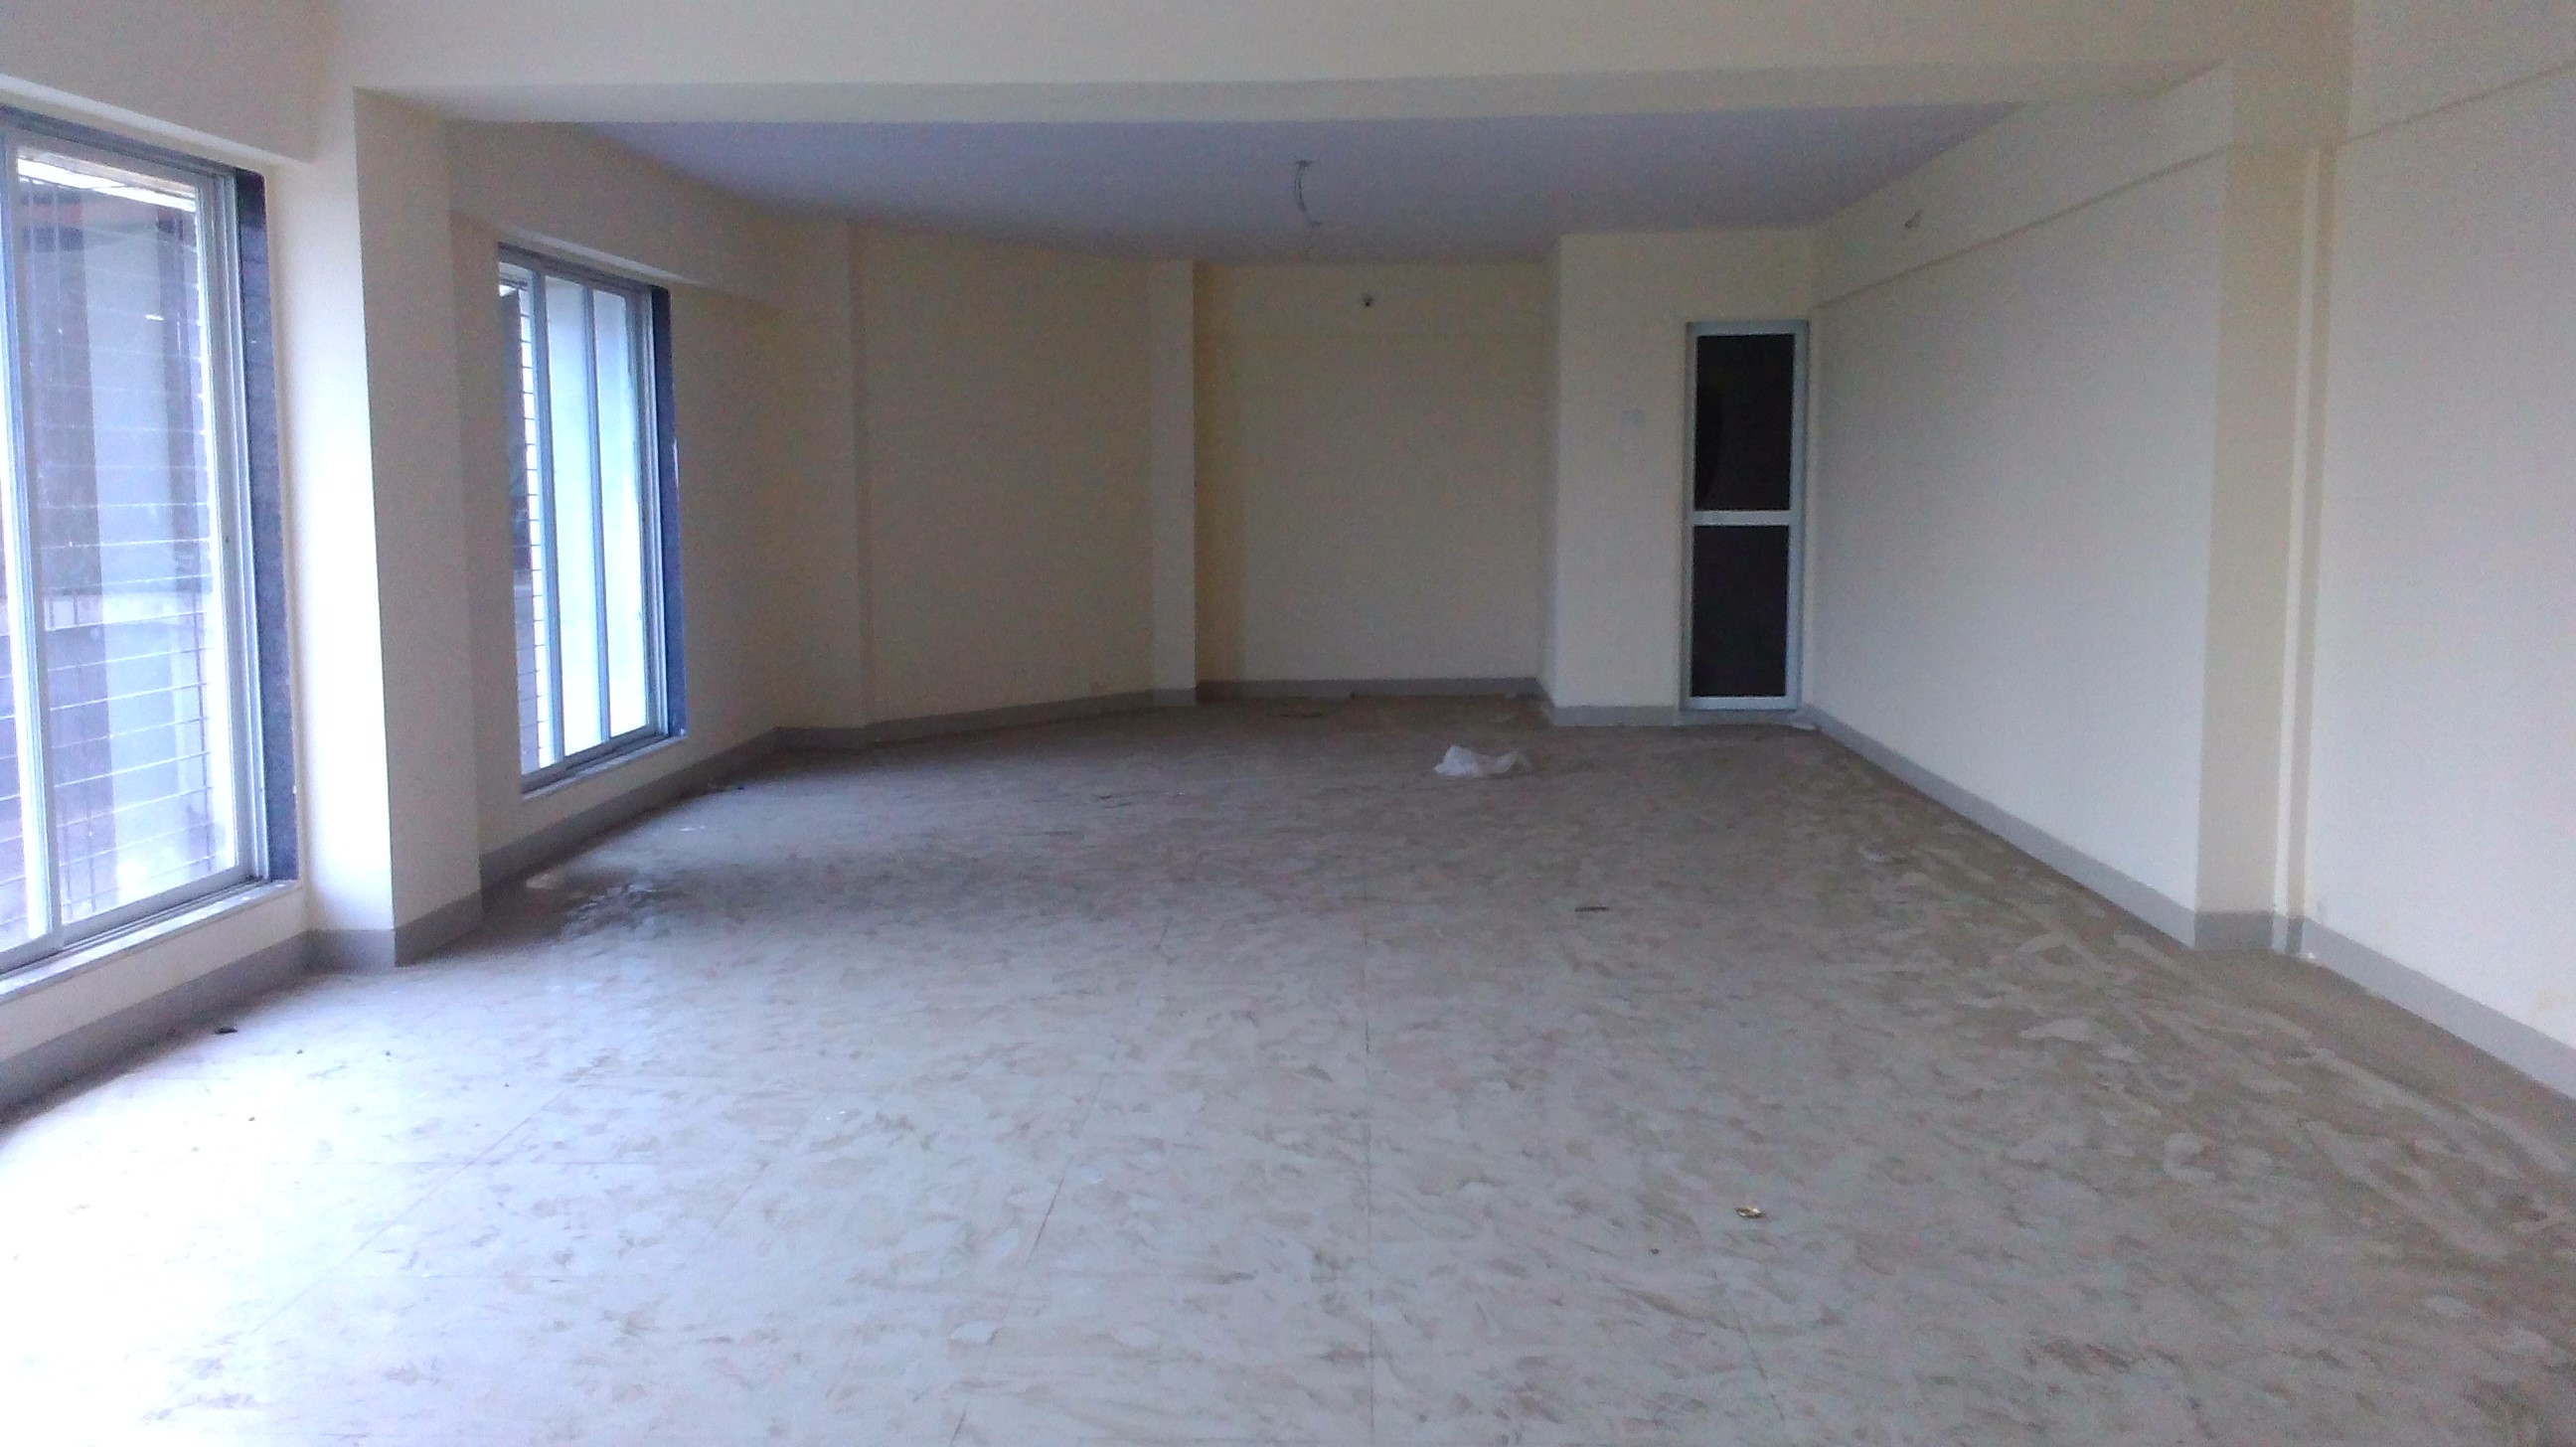 Commercial Office Space for Rent in Commercial Office space for Rent, Near Station, Thane-West, Mumbai